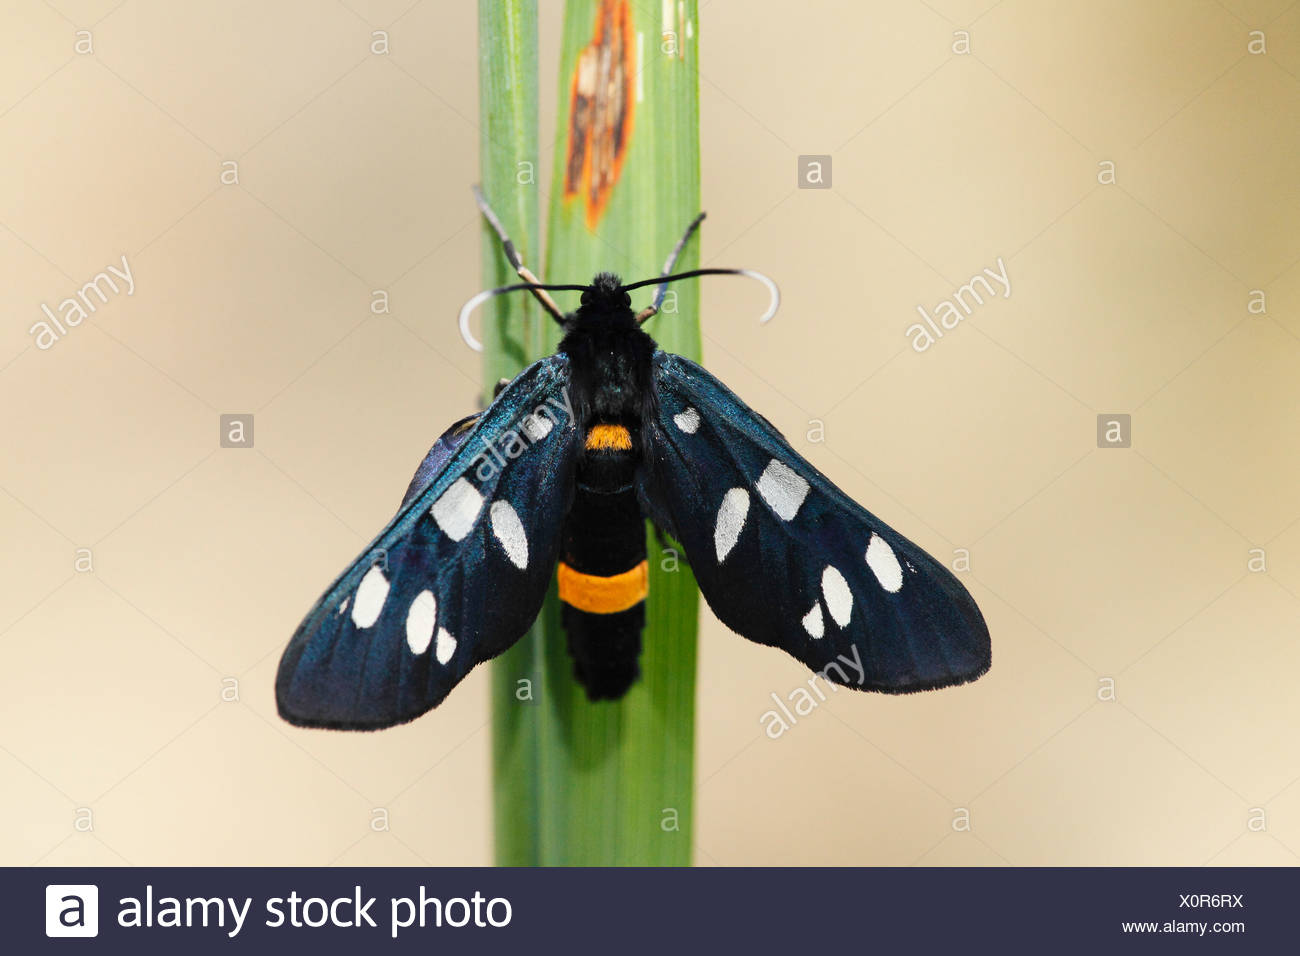 Austria, Wachau, Close up of Nine-spotted moth on stem - Stock Image